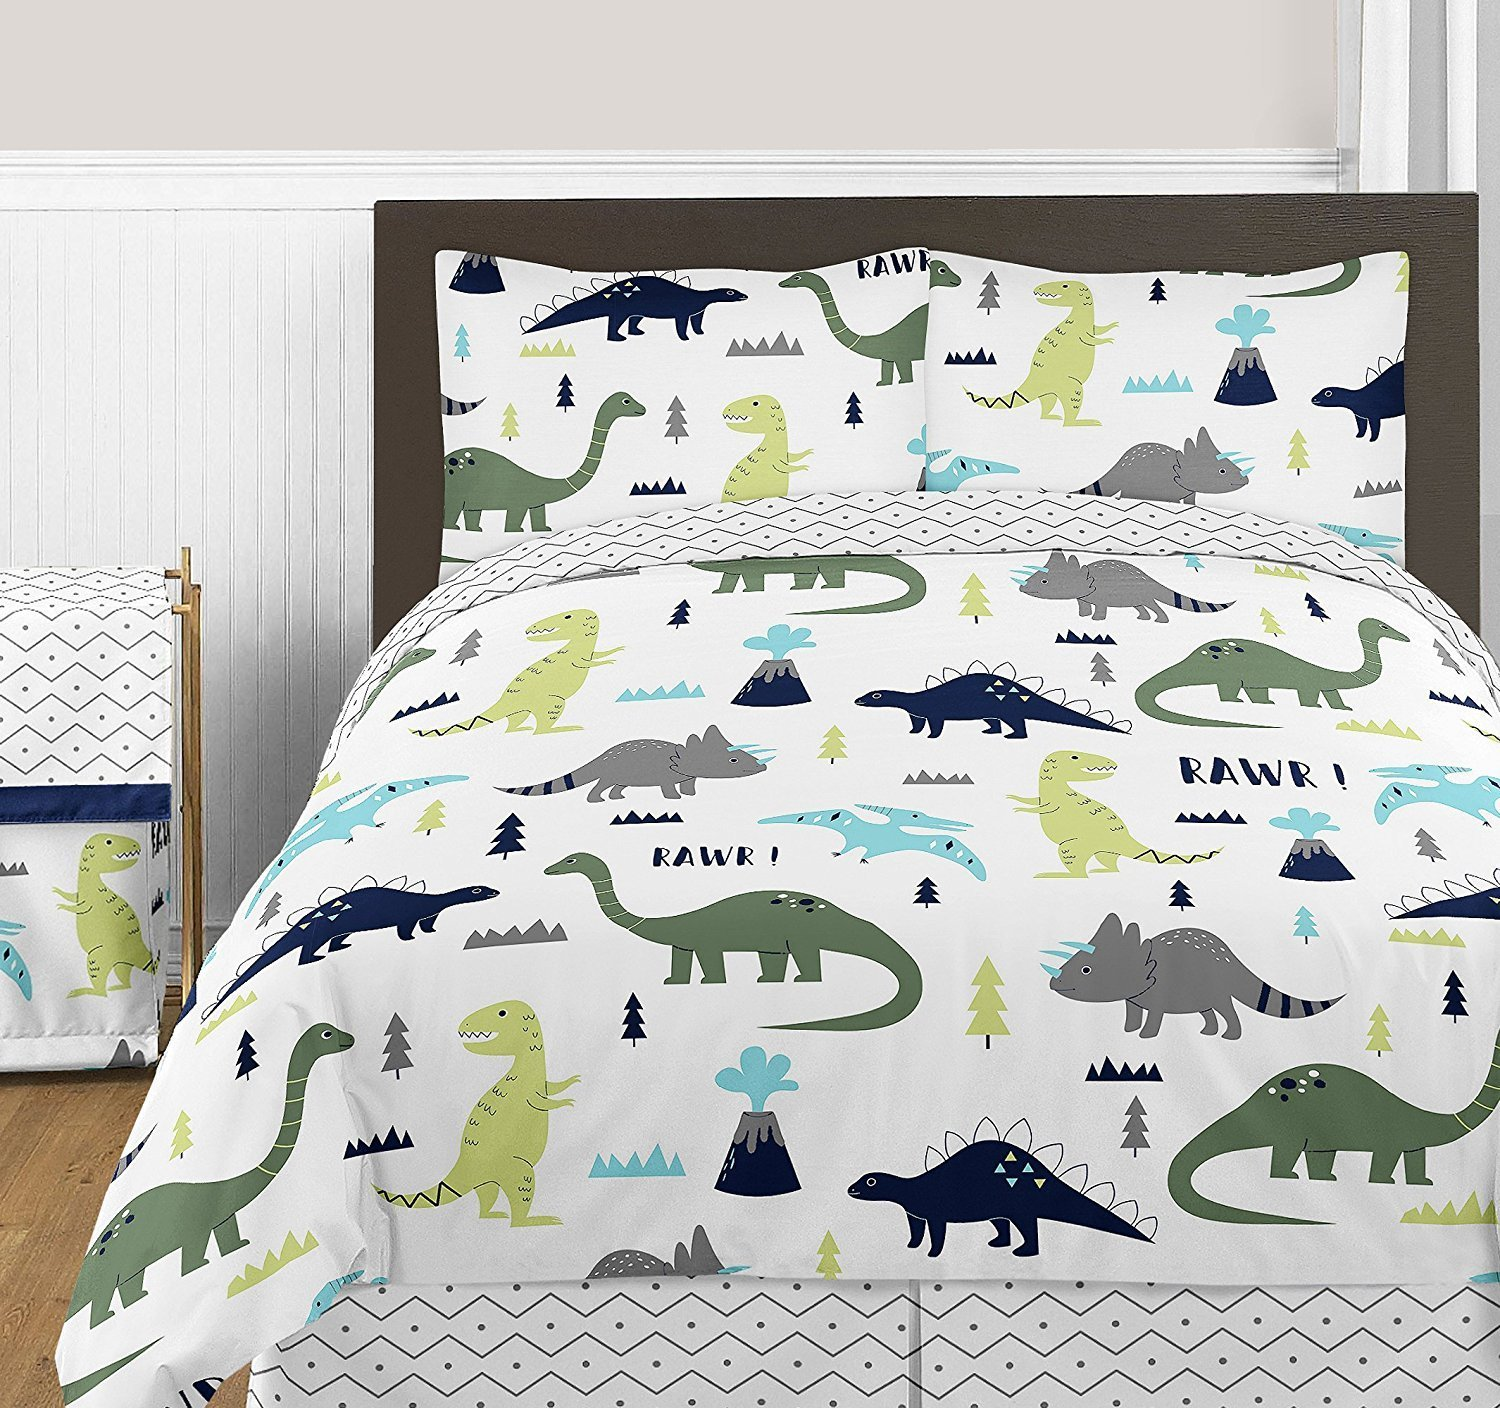 Sweet Jojo Designs 3-Piece Navy Blue and Green Modern Dinosaur Boys or Girls Full / Queen Bedding